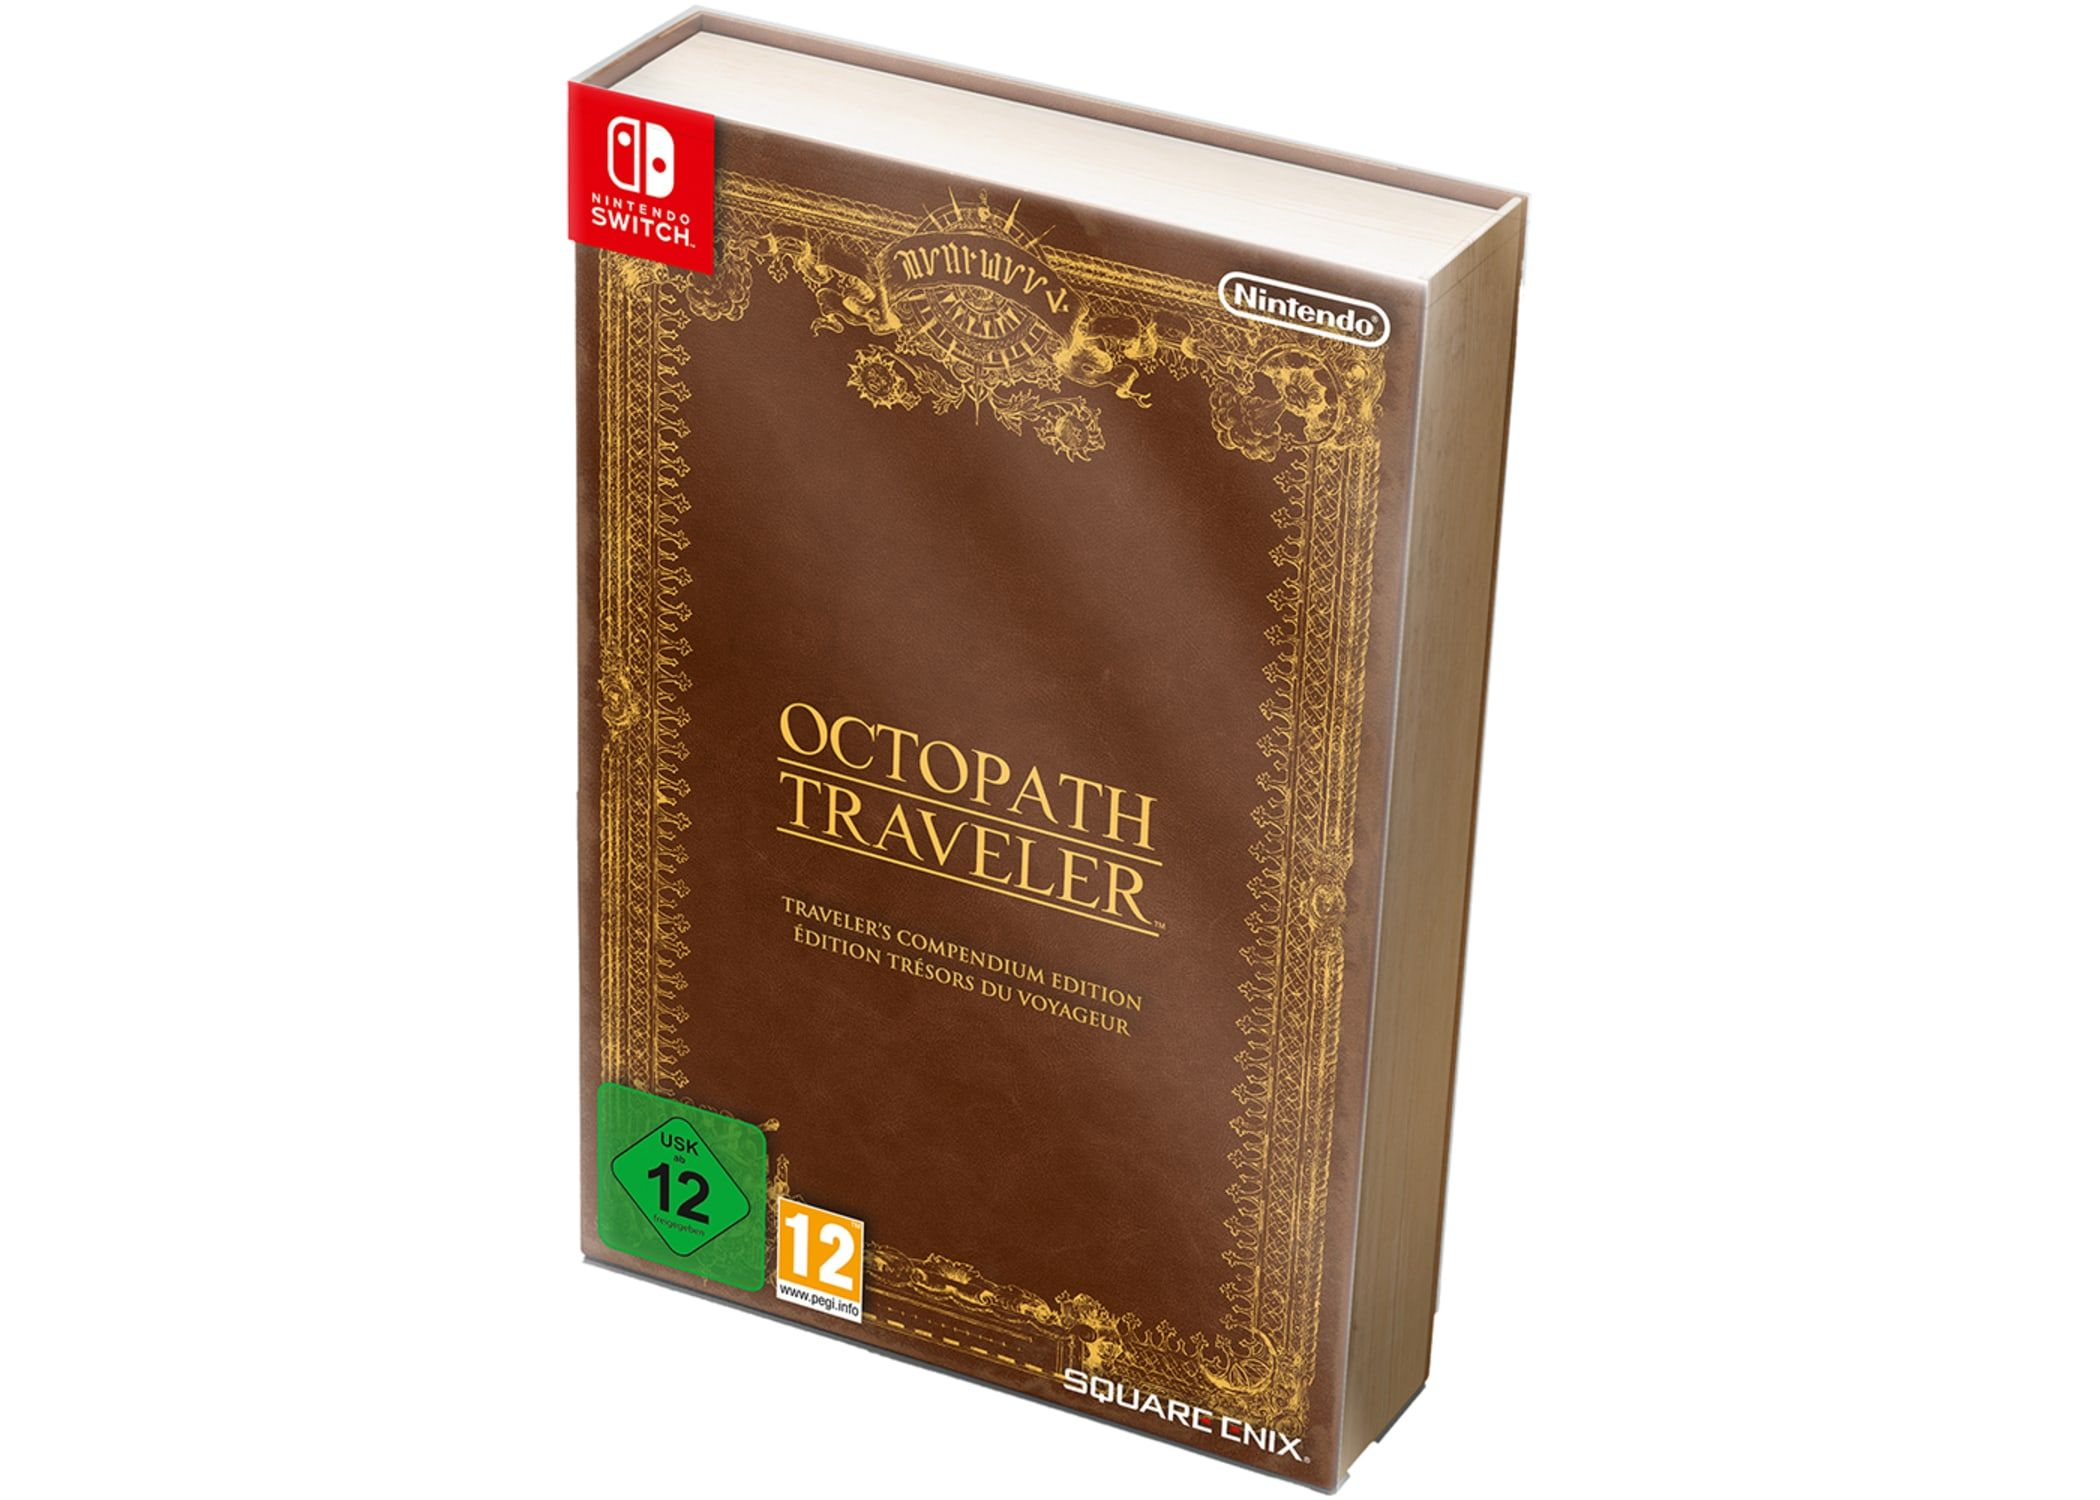 Buy Octopath Traveler: Traveler's Compendium Edition on Switch  GAME #Affiliate , #sponsored, #Traveler, #Octopath, #Buy, #Compendium, #GAME